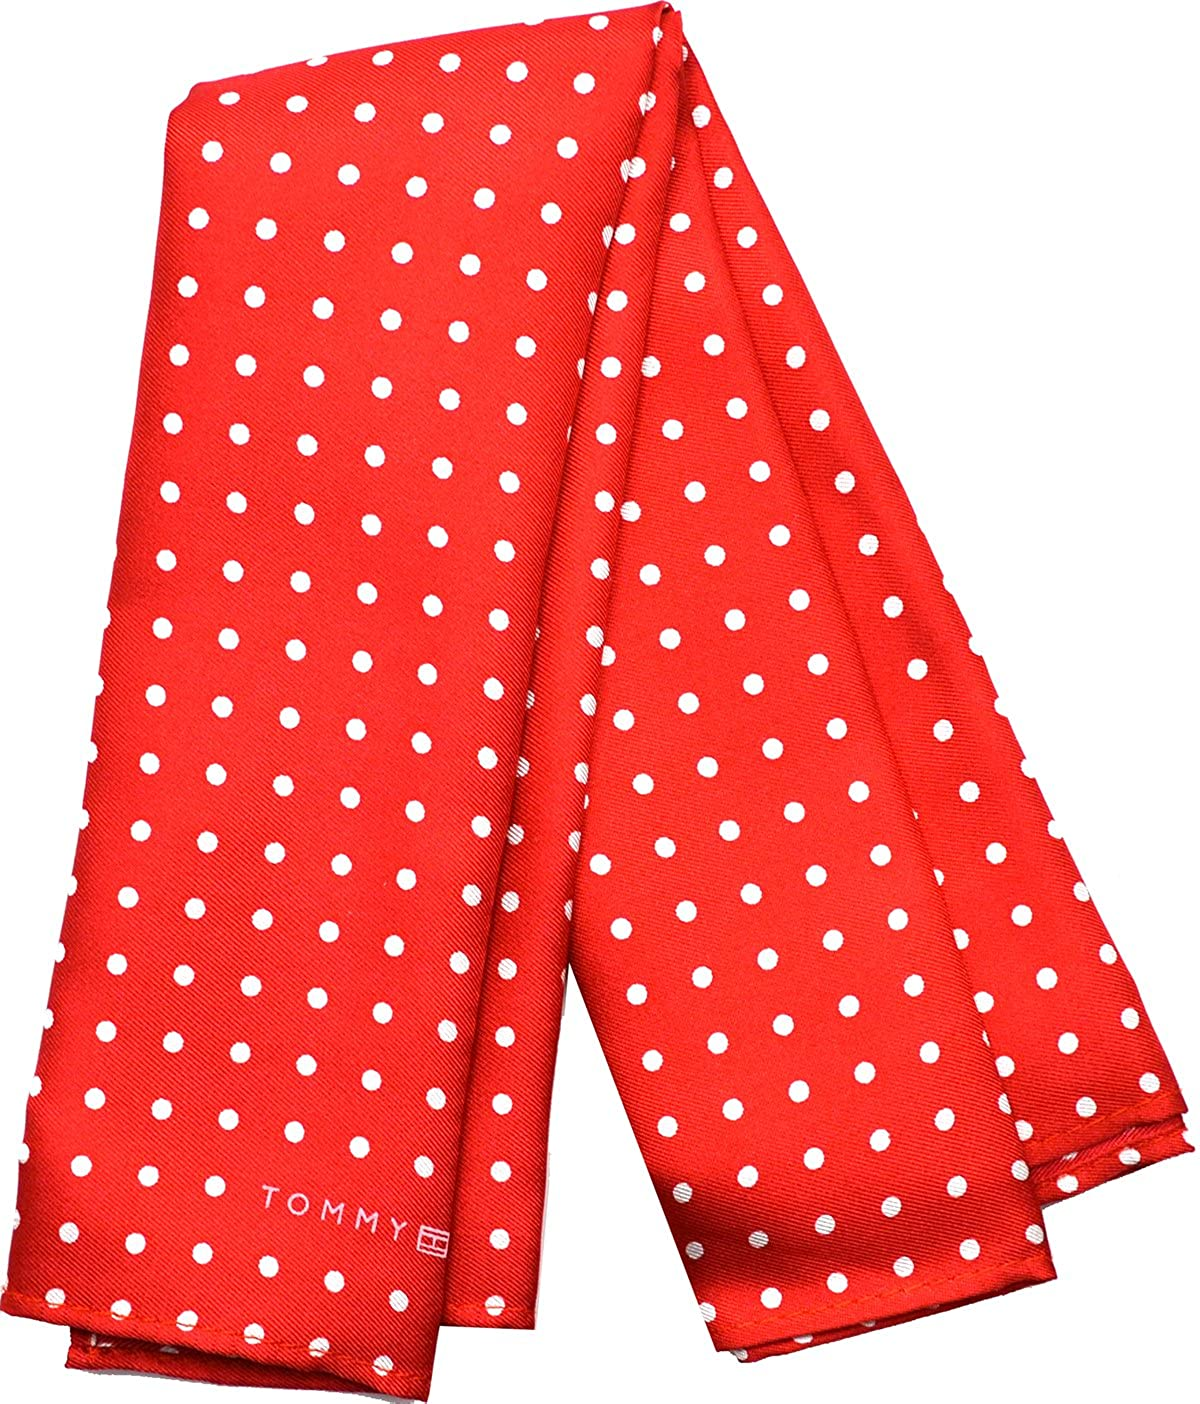 Tommy Hilfiger Men's Color Dot Pocket Square (Red)